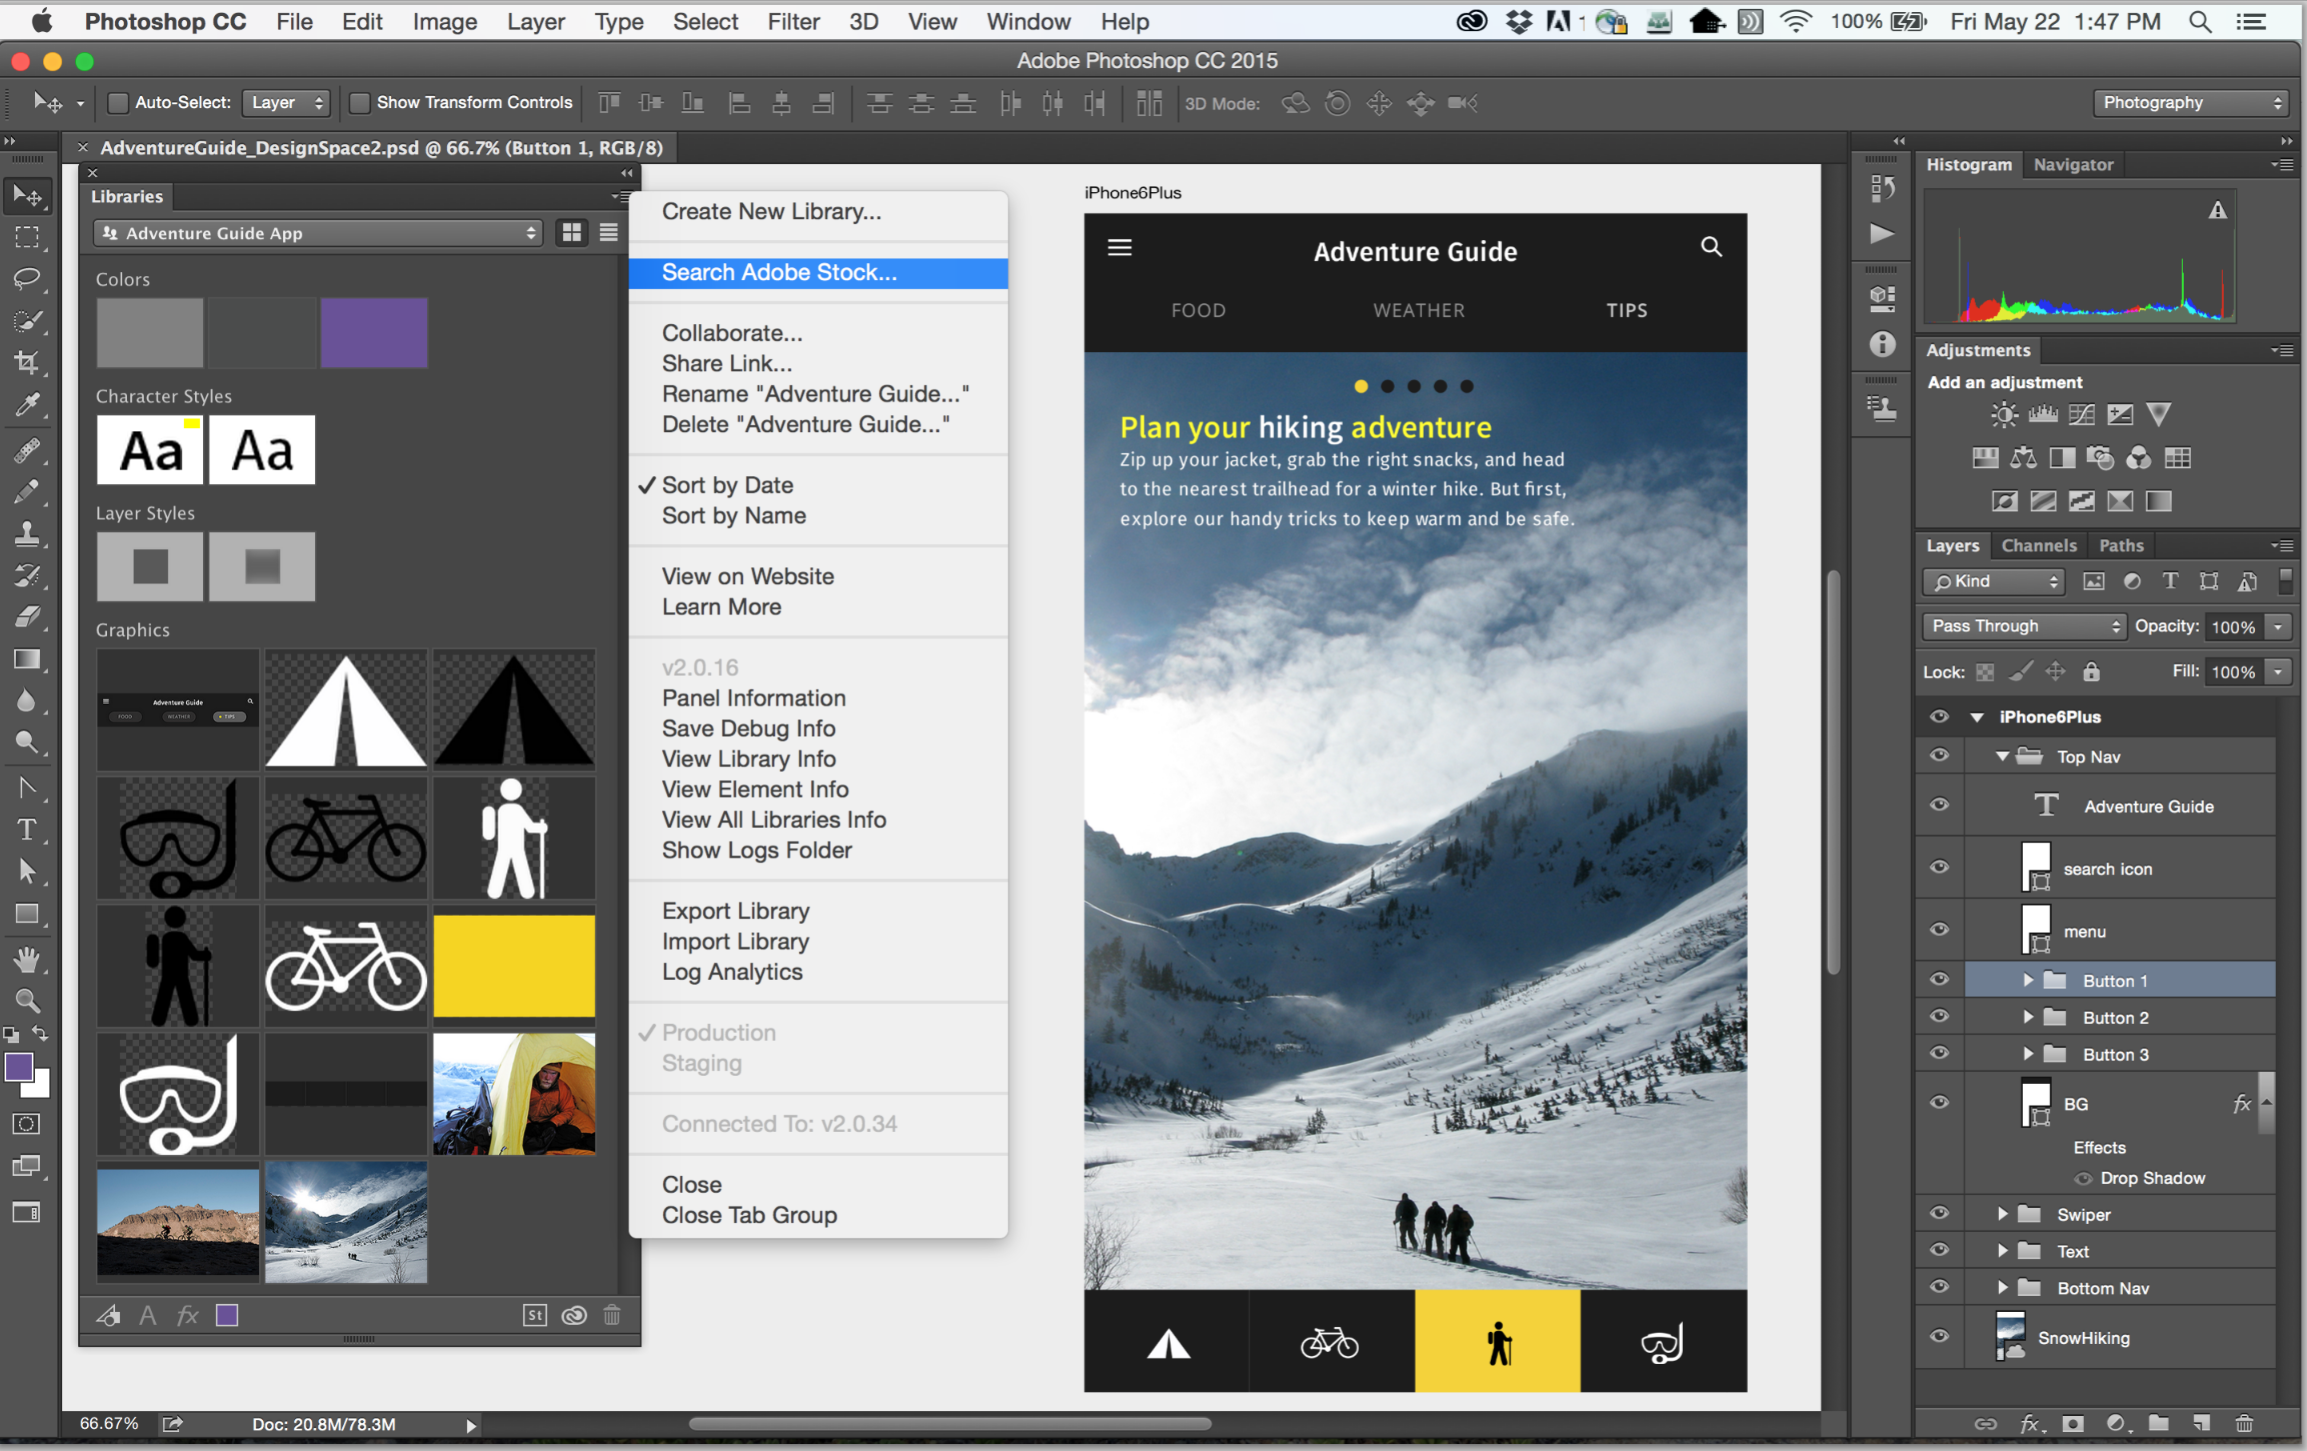 Adobe Updates Creative Cloud With Dehaze Tool For Photoshop and